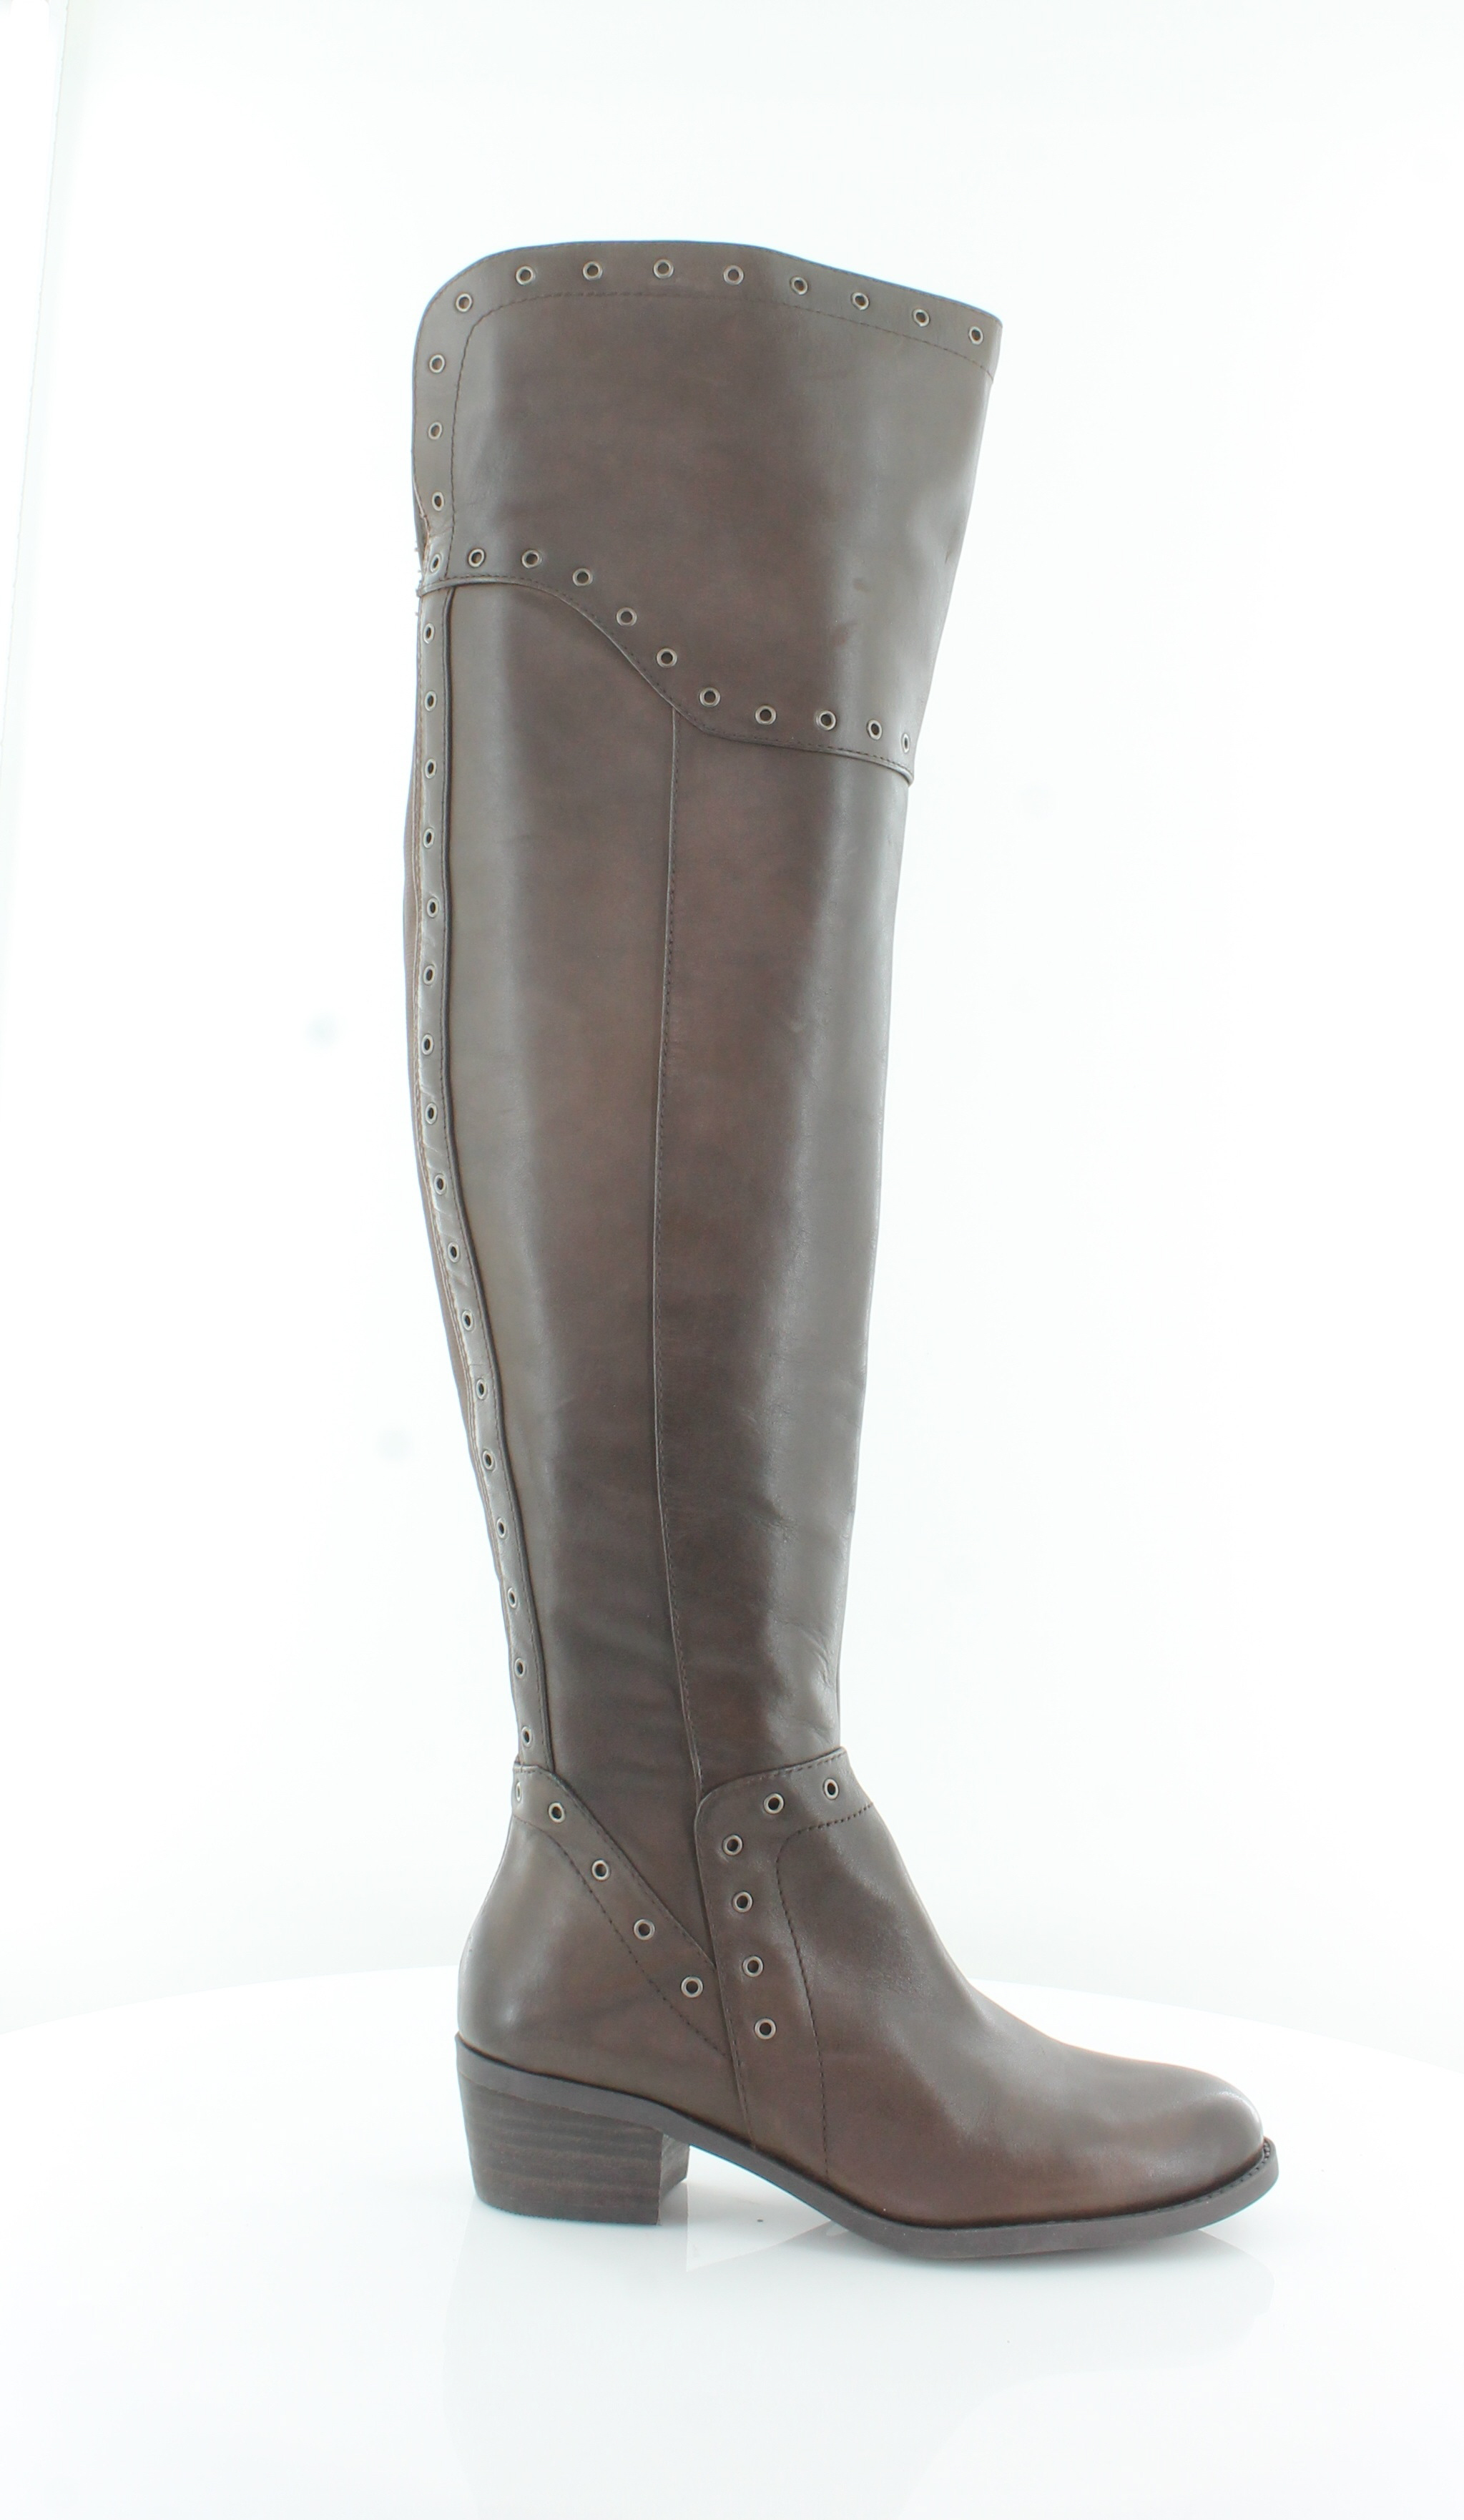 Vince Camuto Bestan Brown Womens shoes Size 7 M Boots MSRP  198